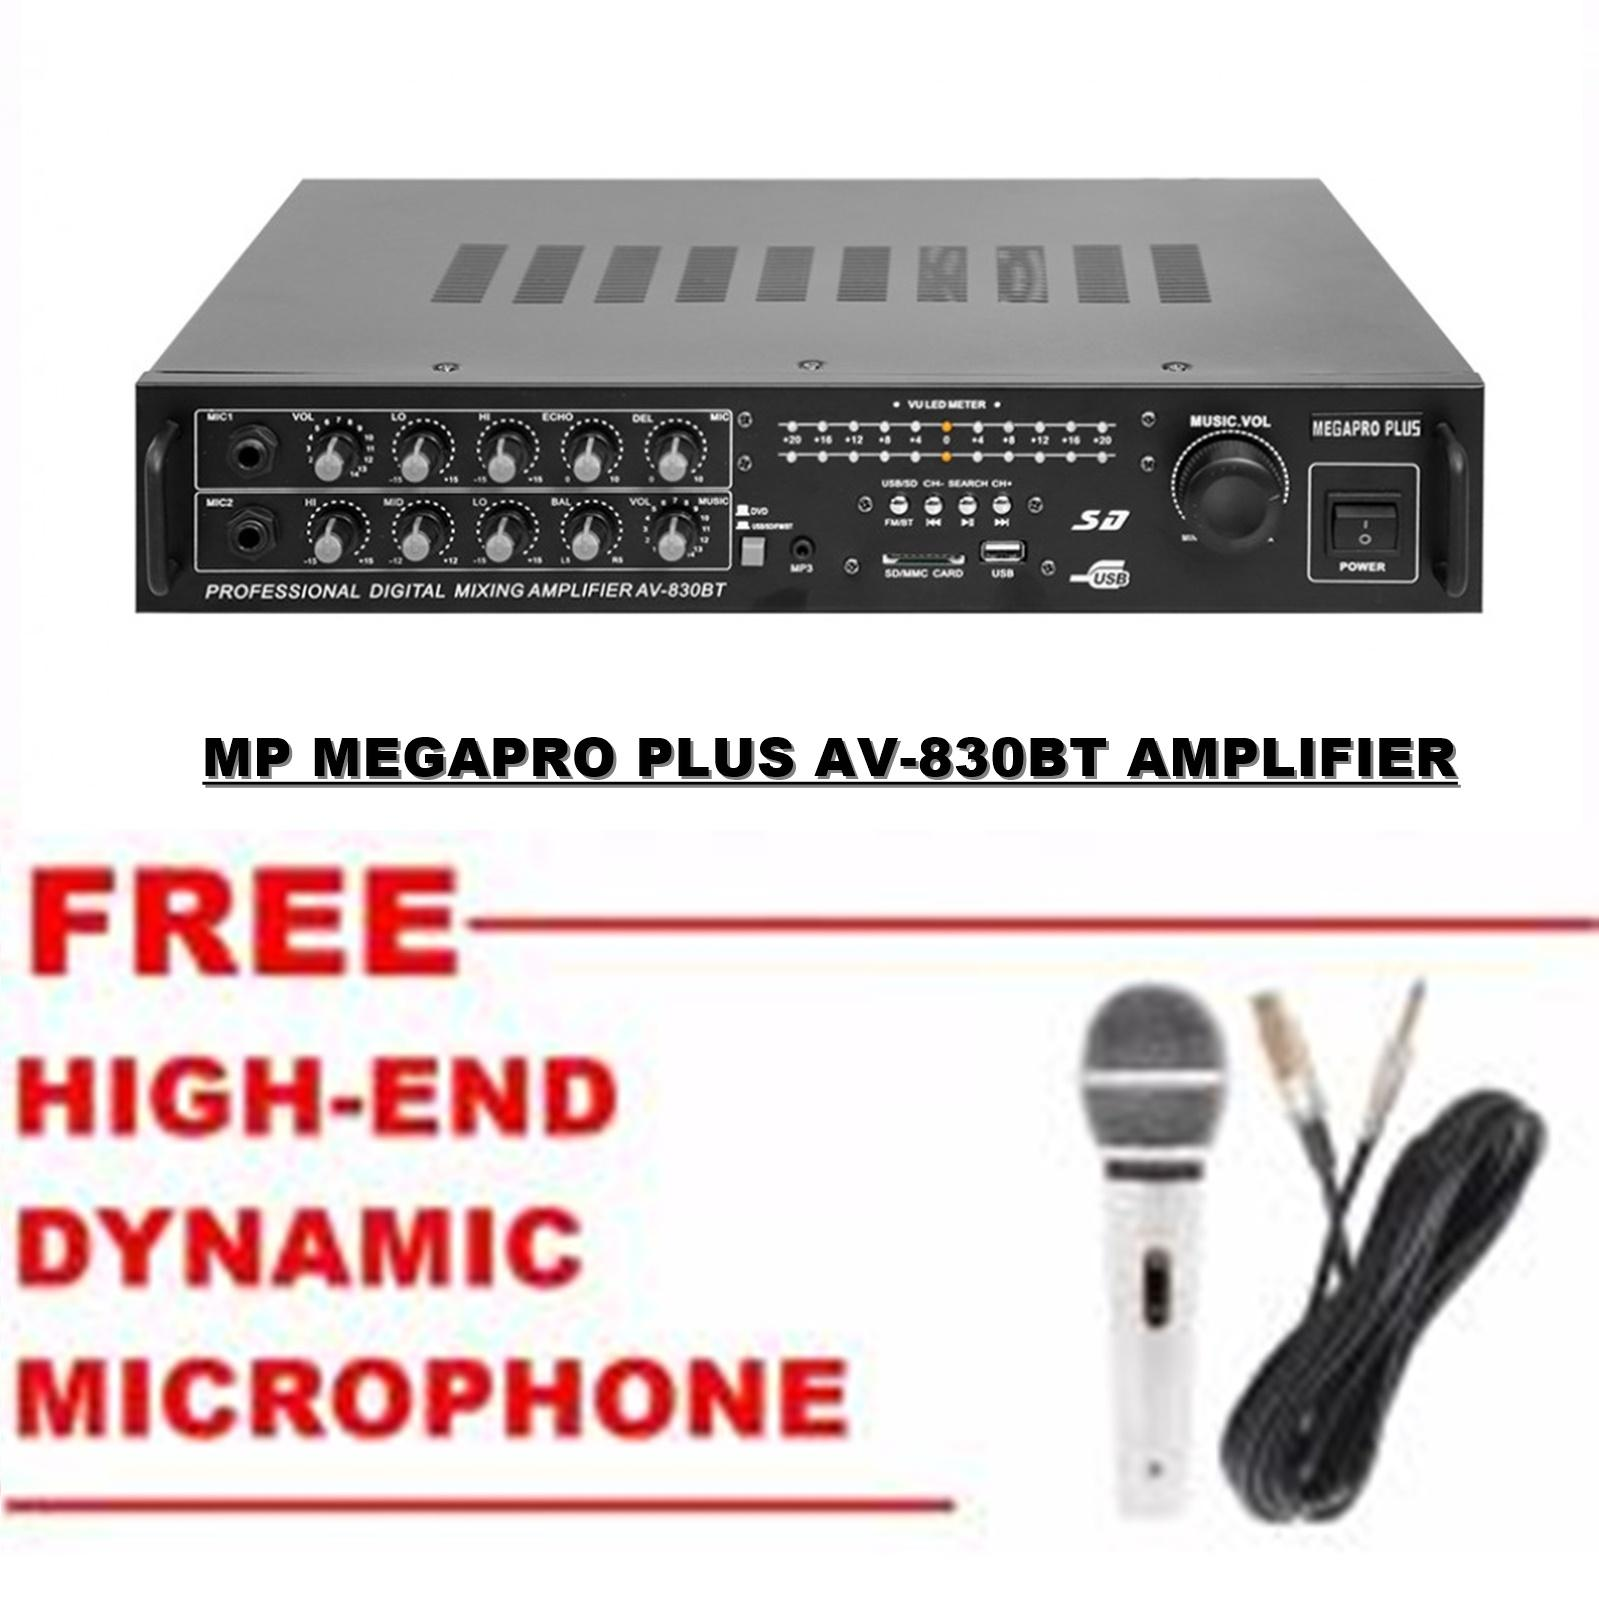 Audio Amplifier For Sale Av Receiver Prices Brands Specs In Lm386 As Btl Circuit Diagram Amplifiercircuit 830bt Mp Megapro Plus Power W Usb Sd Fm